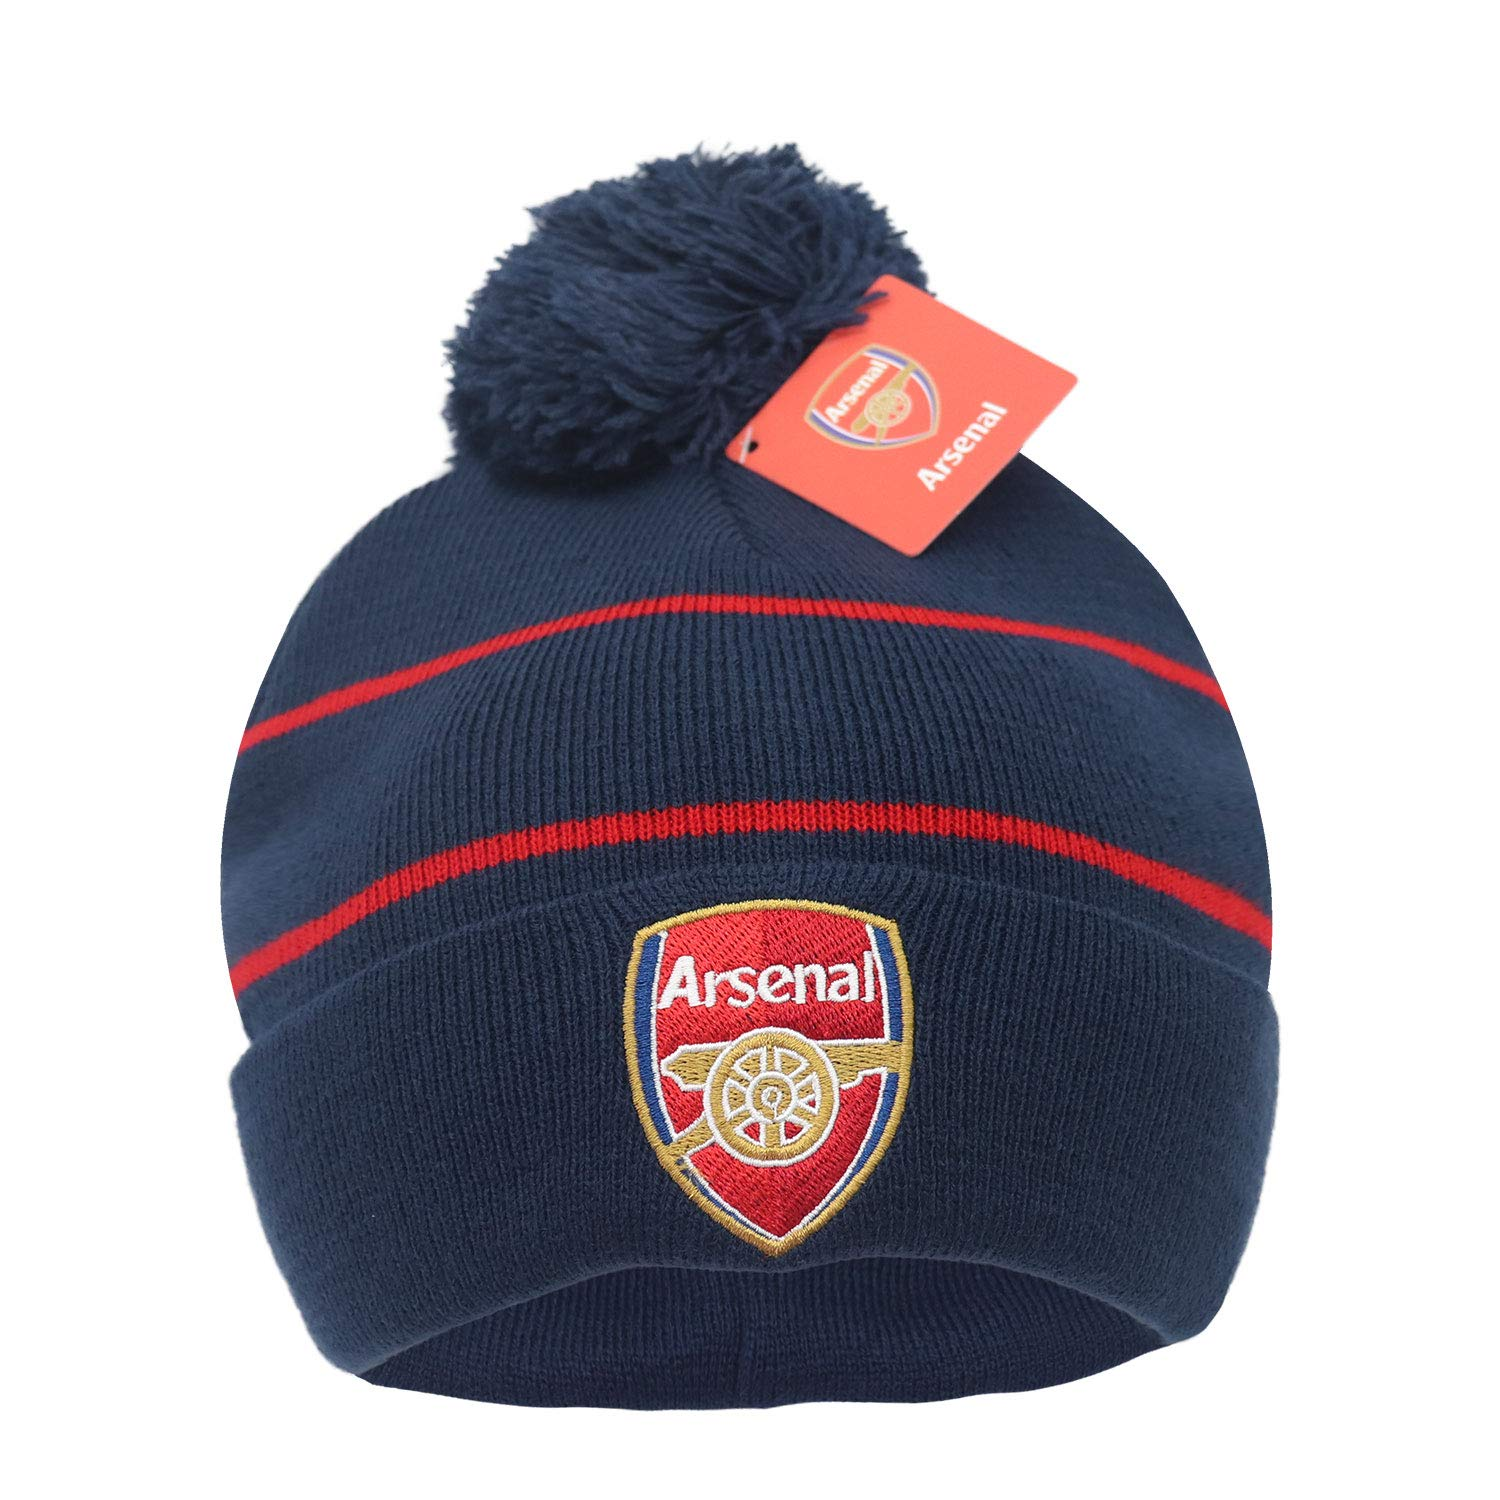 Arsenal FC Official Adults Knitted Soccer//Football Crest Winter Beanie Hat